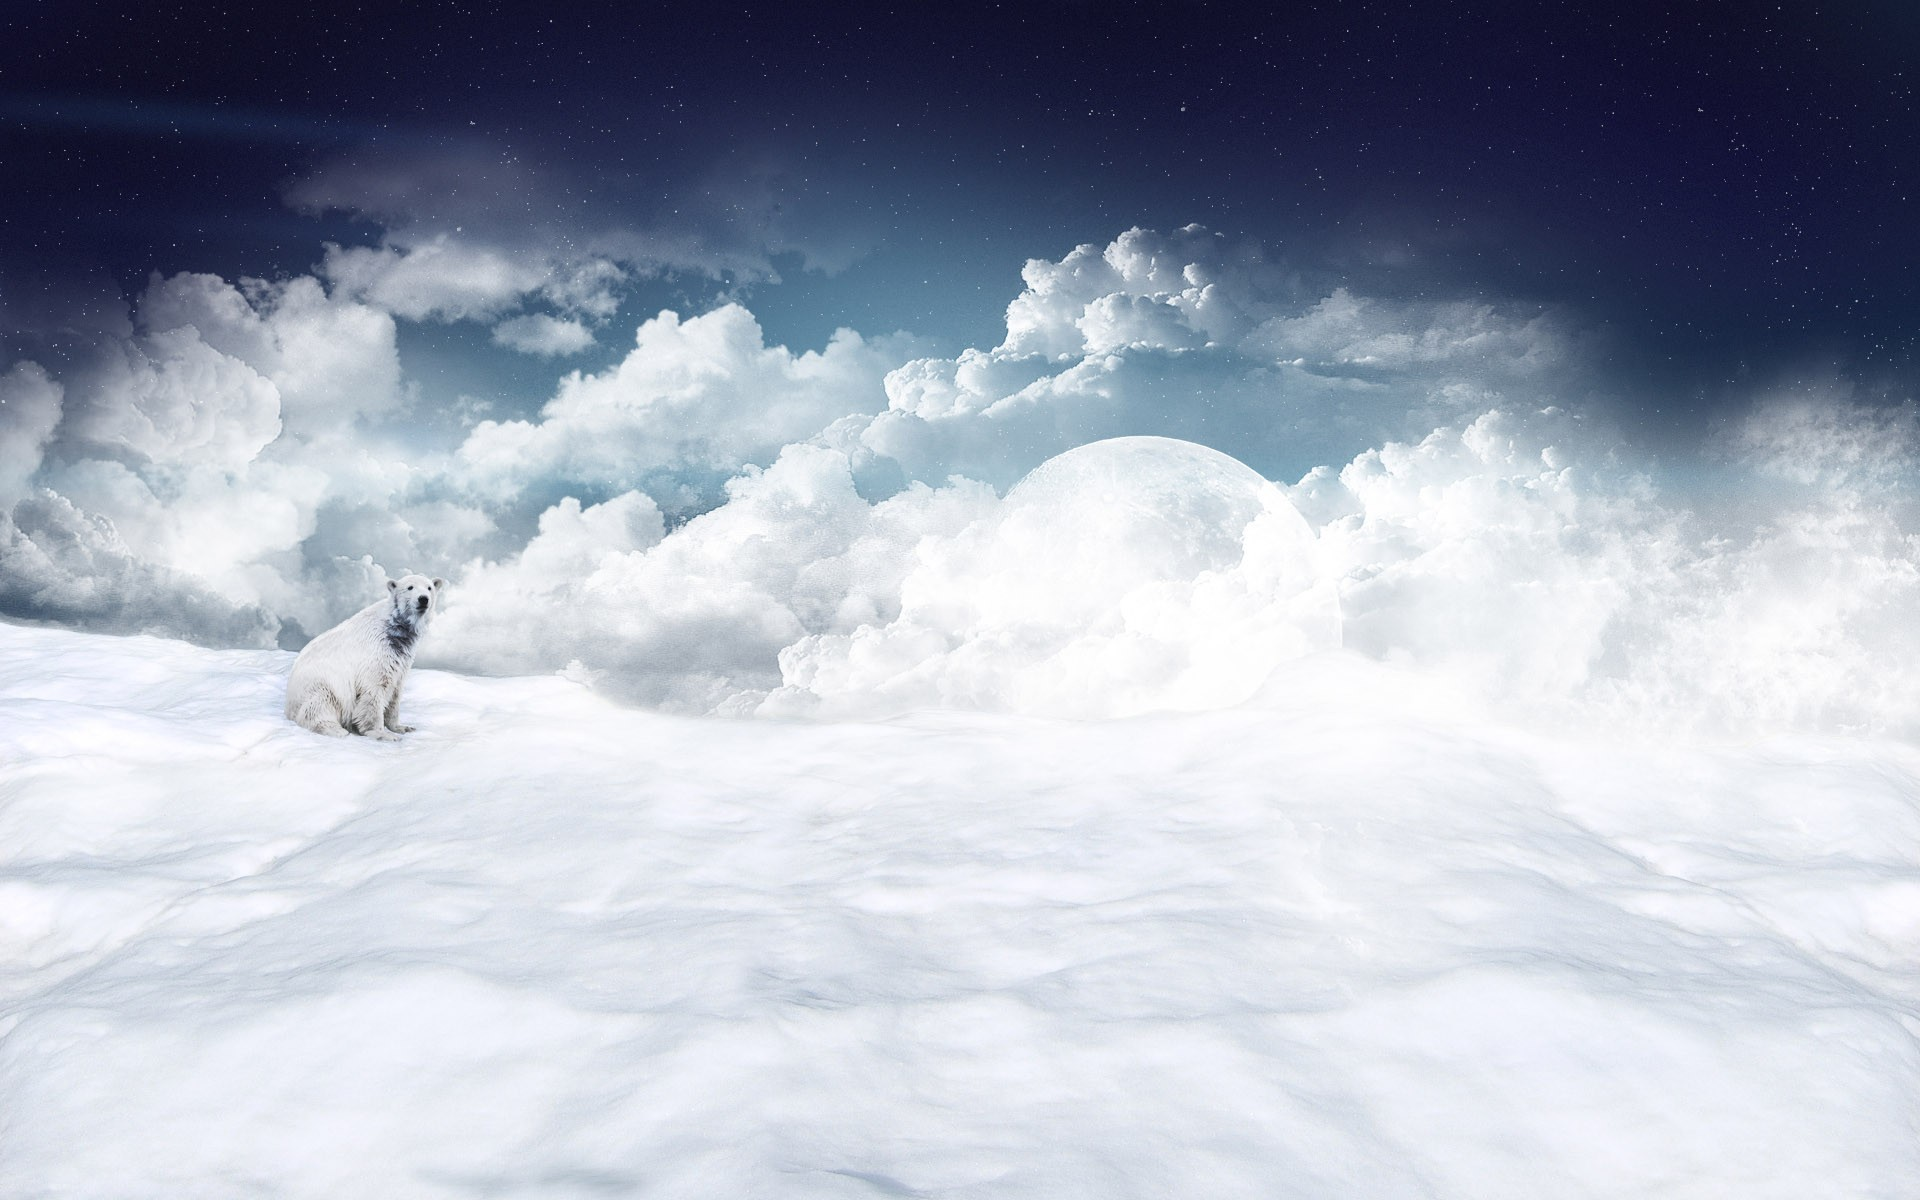 White 1900x1200   Wallpaper High Definition High Quality Widescreen 1920x1200